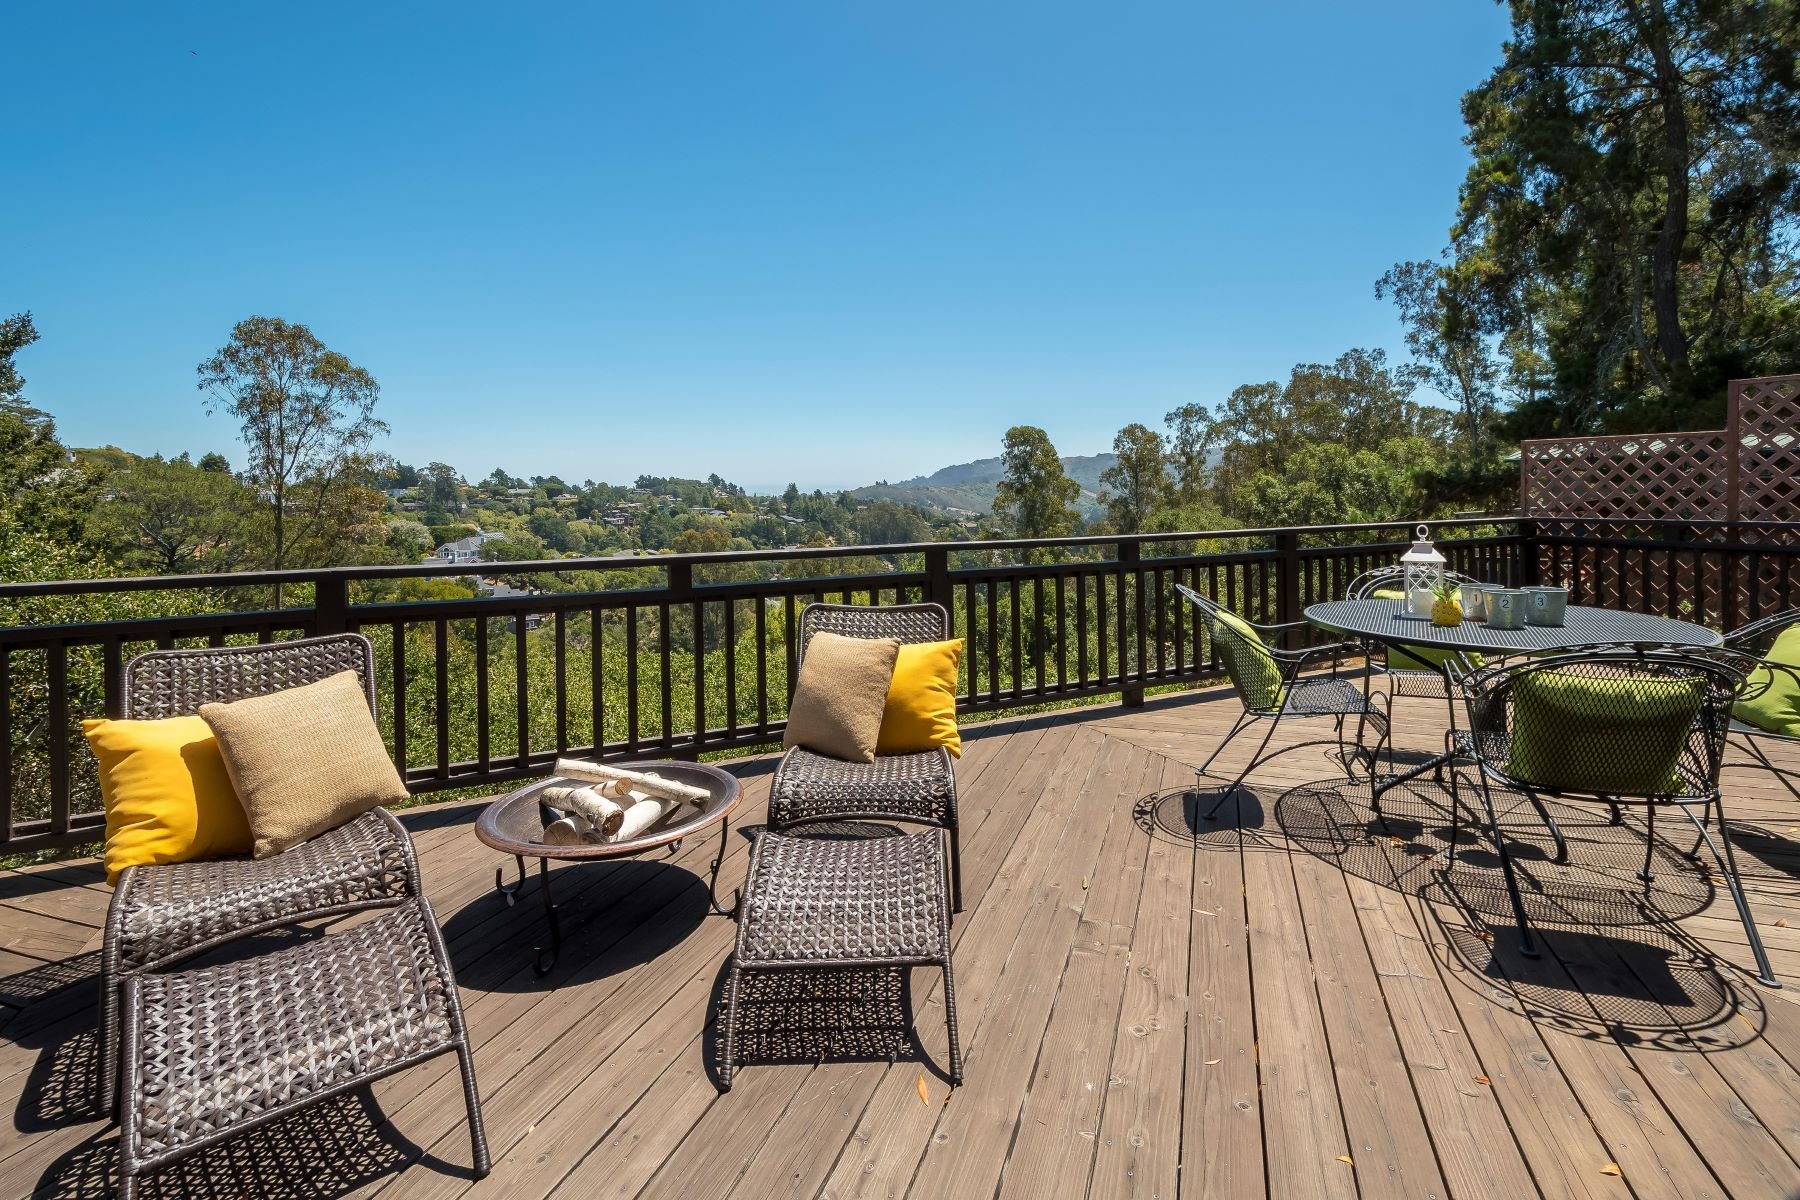 Single Family Homes for Sale at Contemporary Mill Valley View Home 1207 West California Avenue, Mill Valley, California 94941 United States